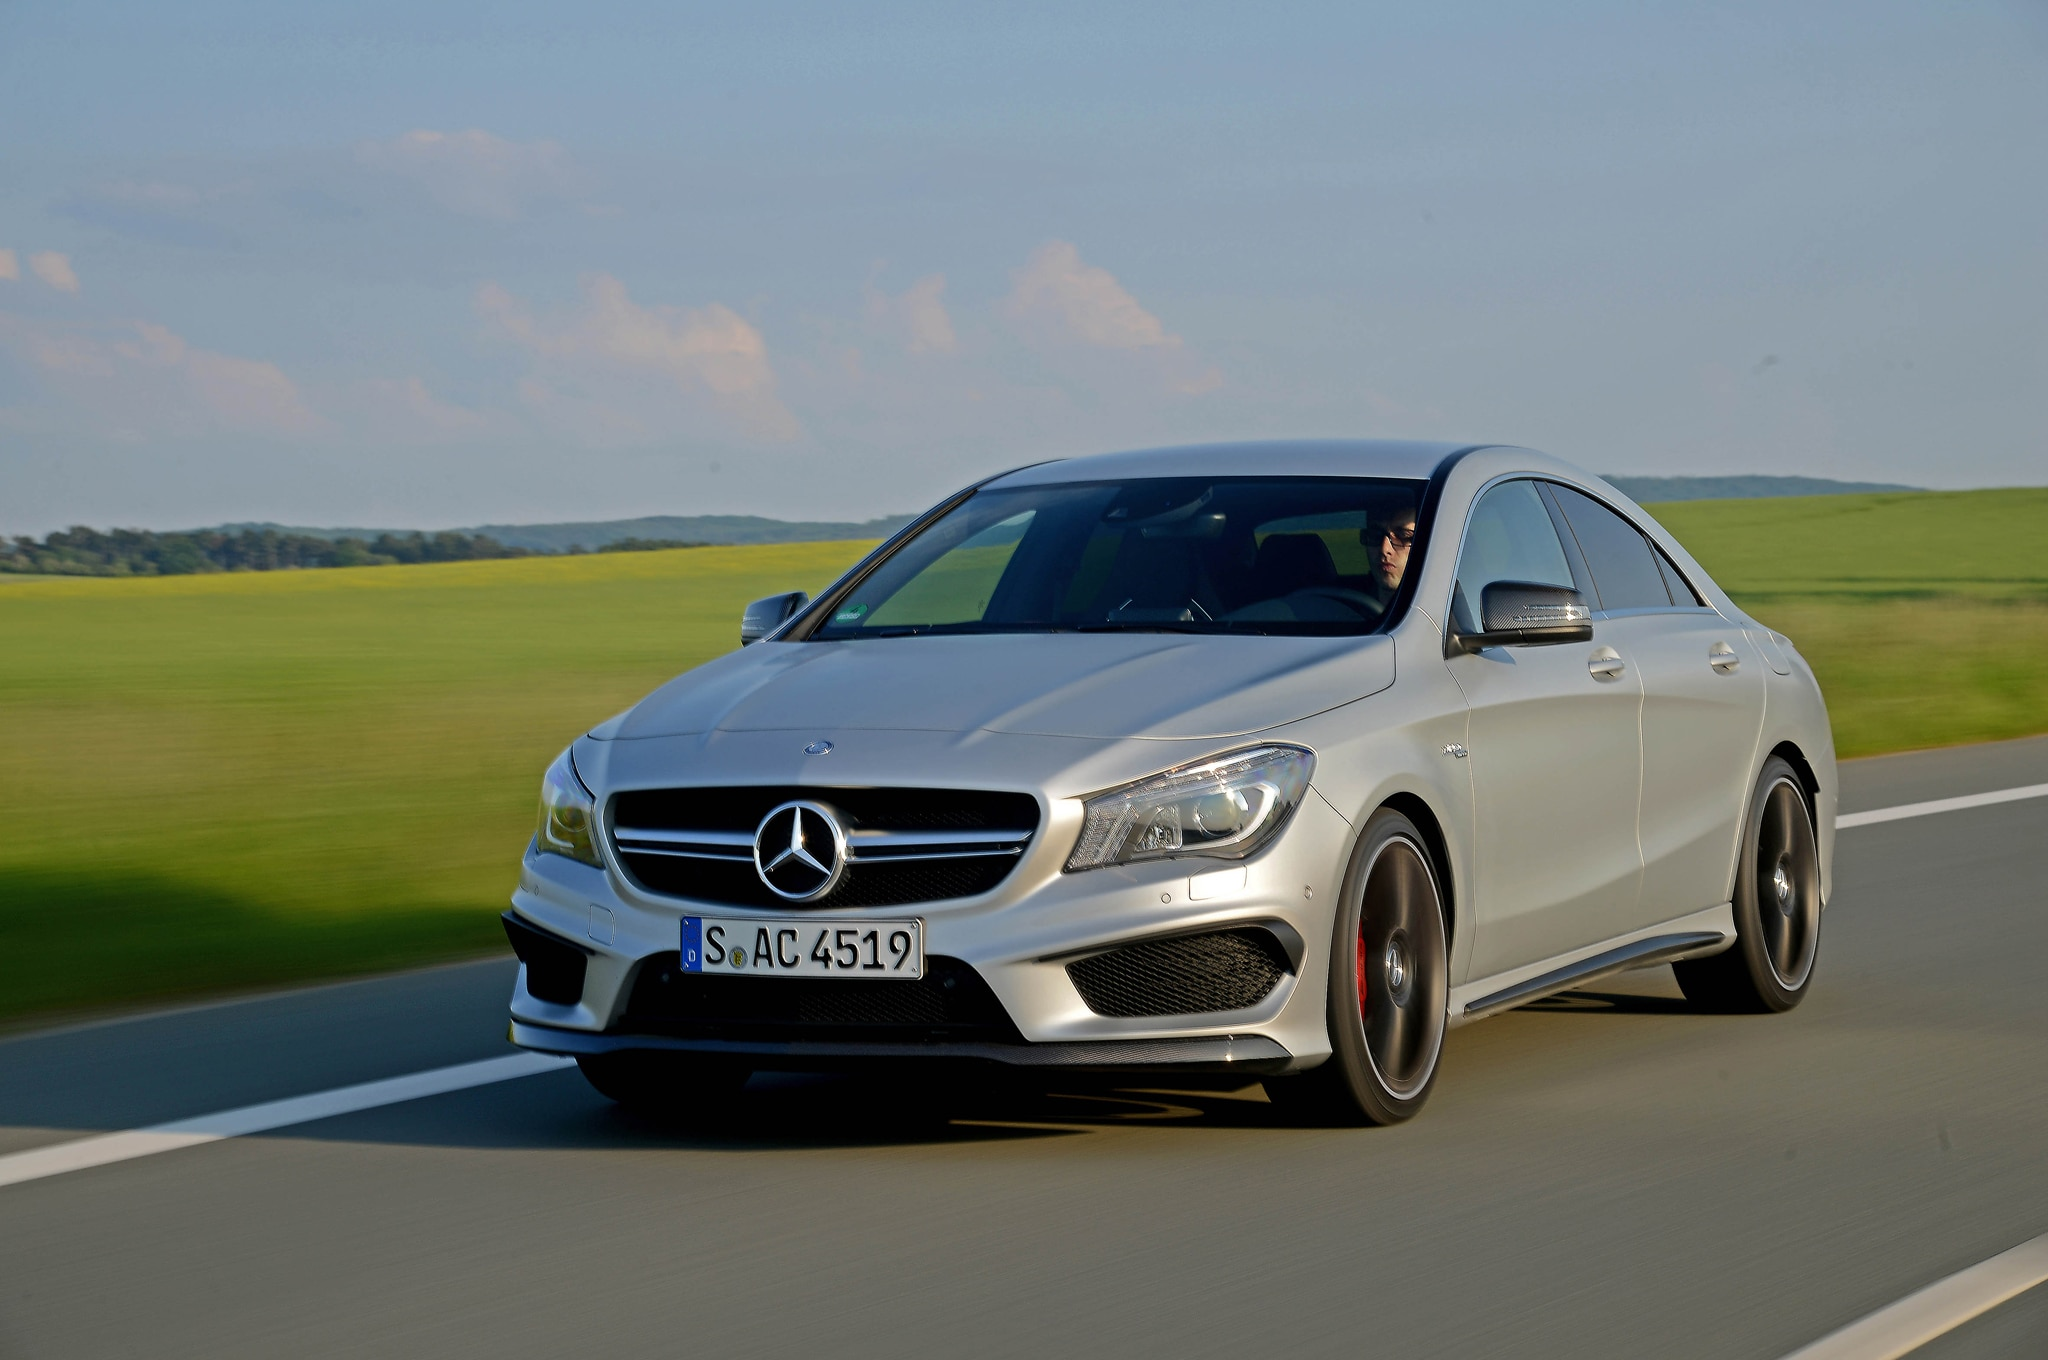 2014 Mercedes Benz CLA 45 AMG Front Three Quarters In Motion 031